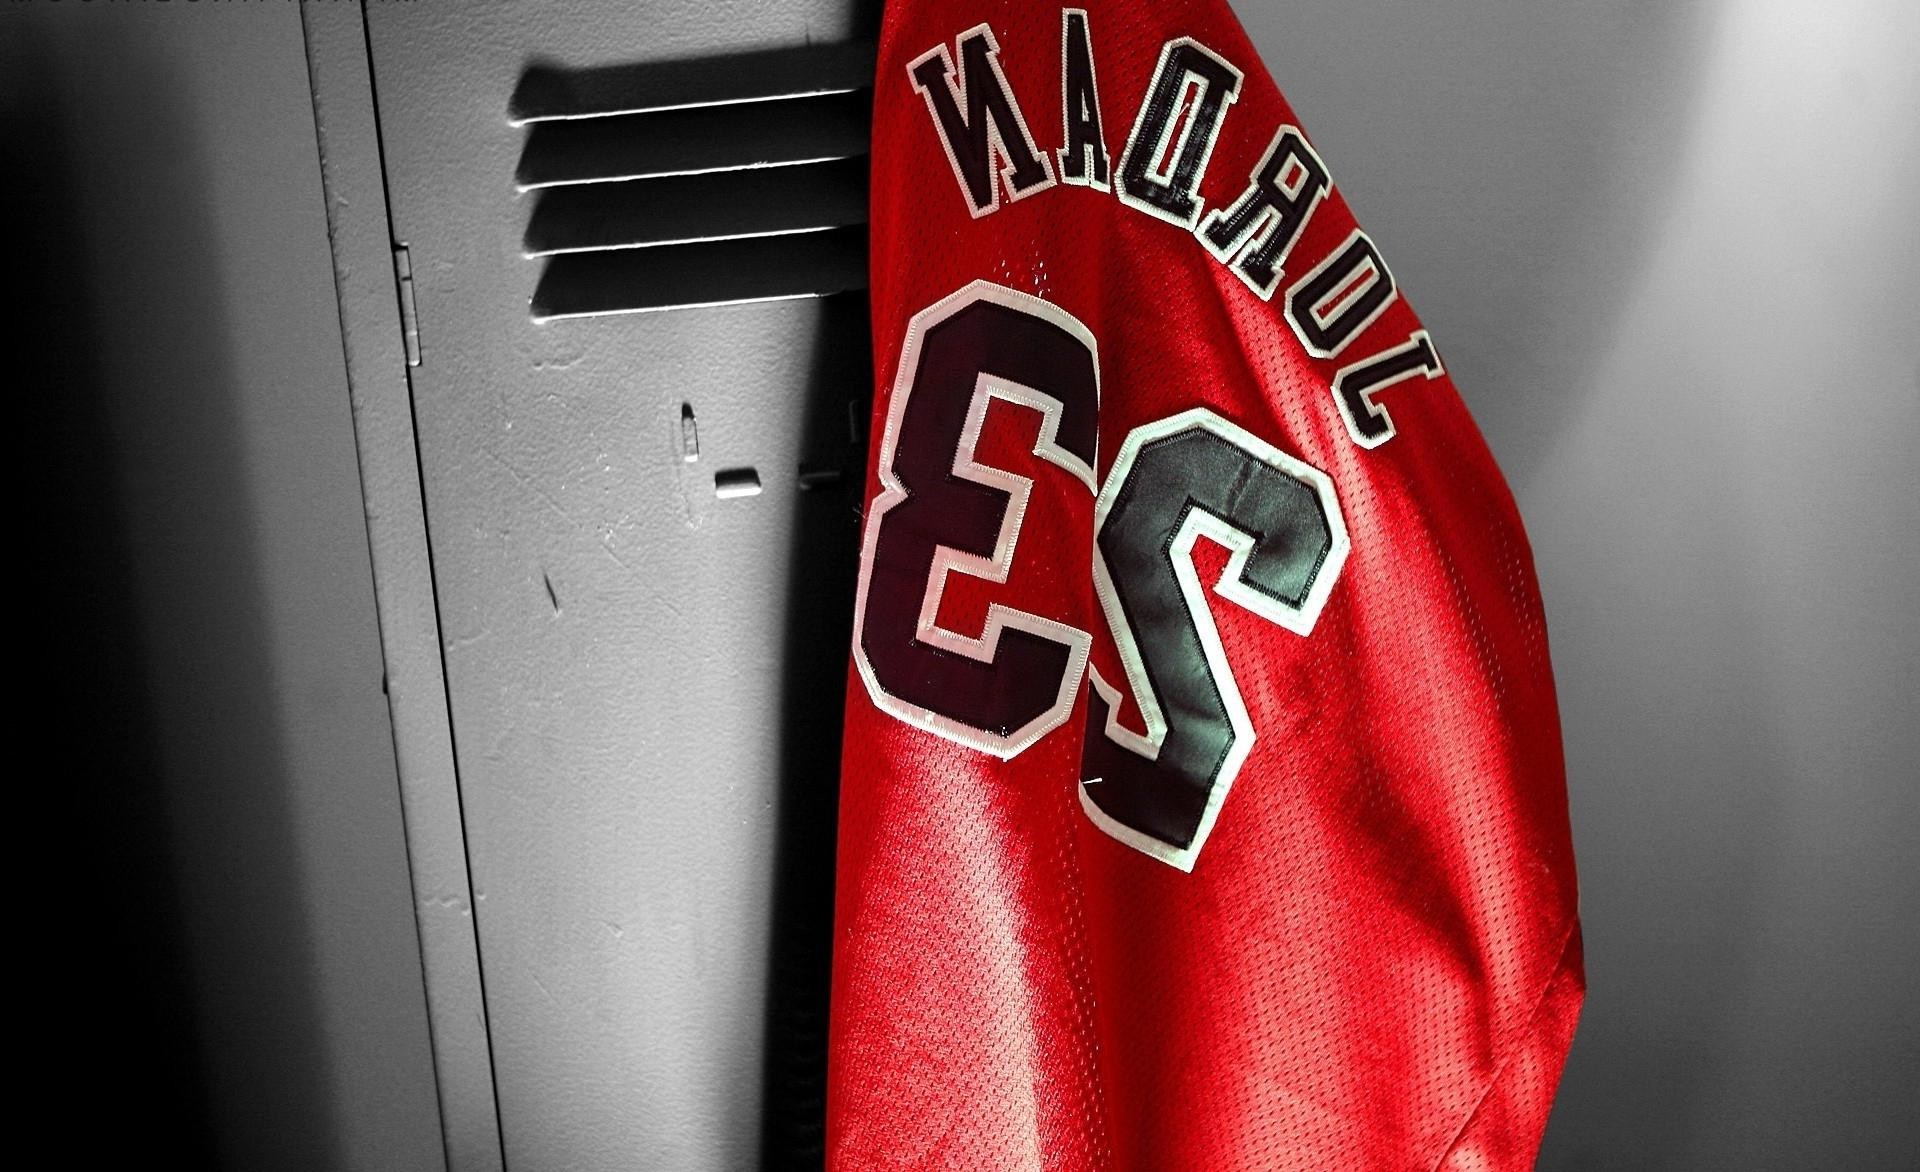 1920x1172 Nba Basketball Michael Jordan uniform Chicago Bulls. CLEVELAND CAVALIERS  Nba Basketball team logo wallpaper